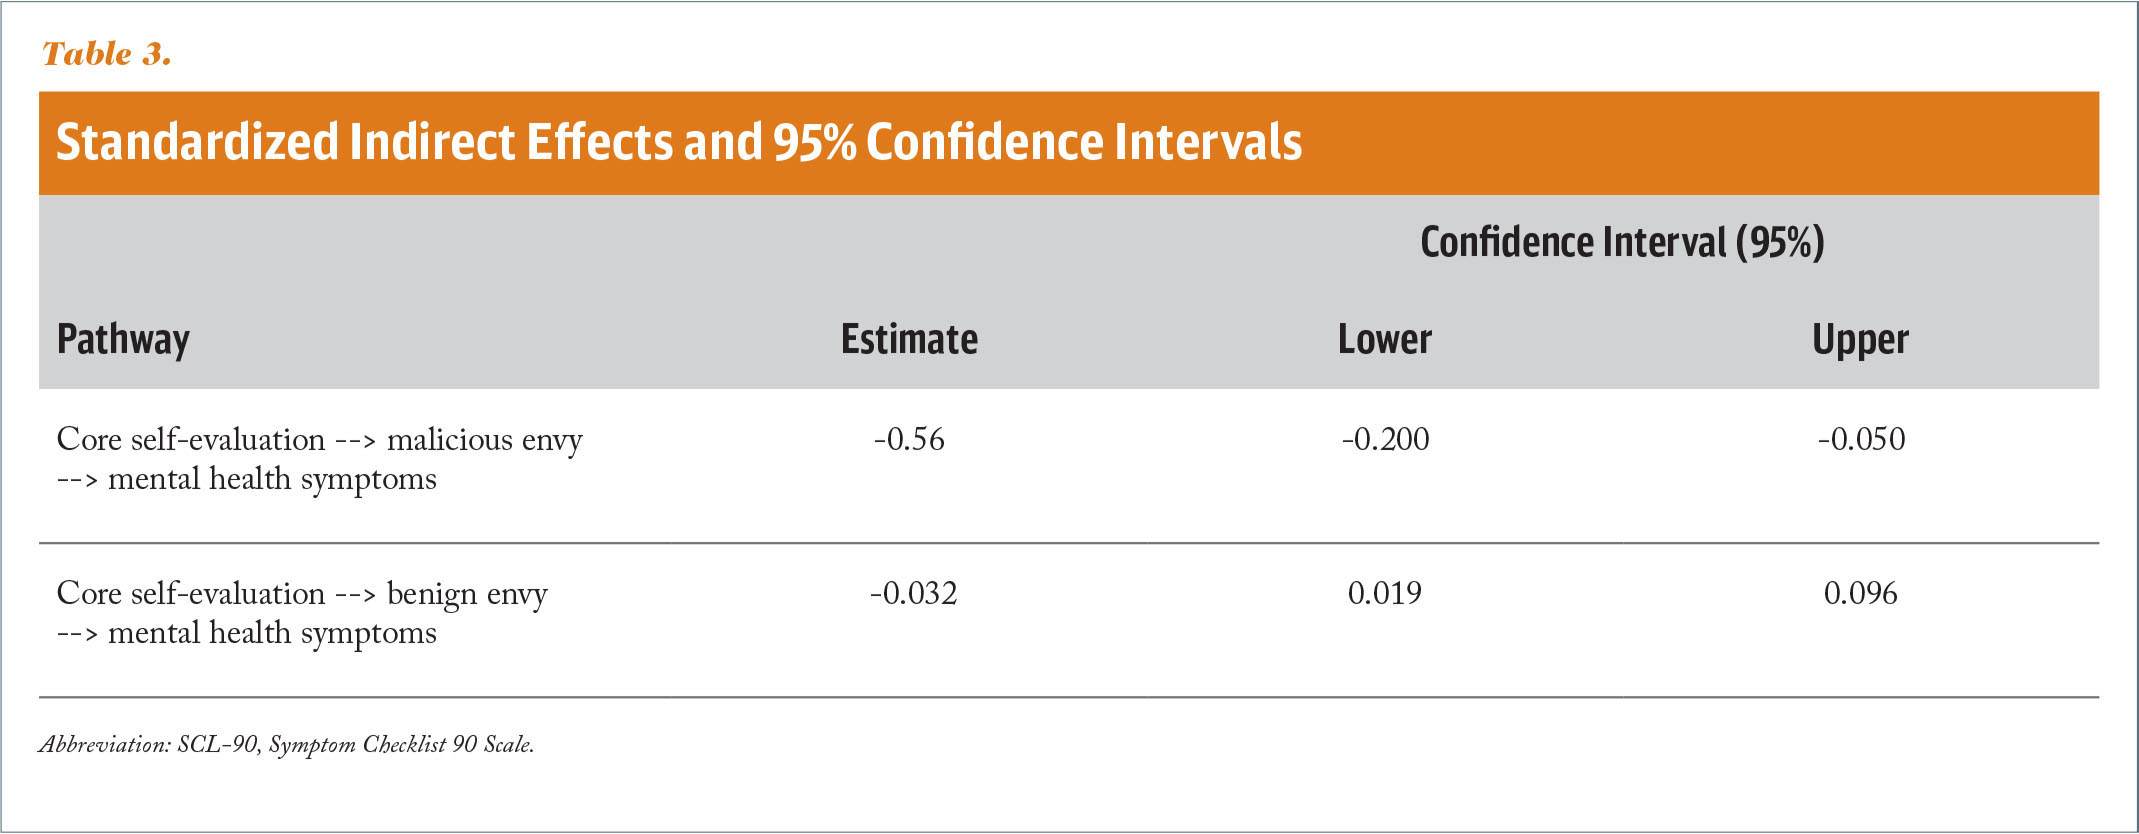 Standardized Indirect Effects and 95% Confidence Intervals